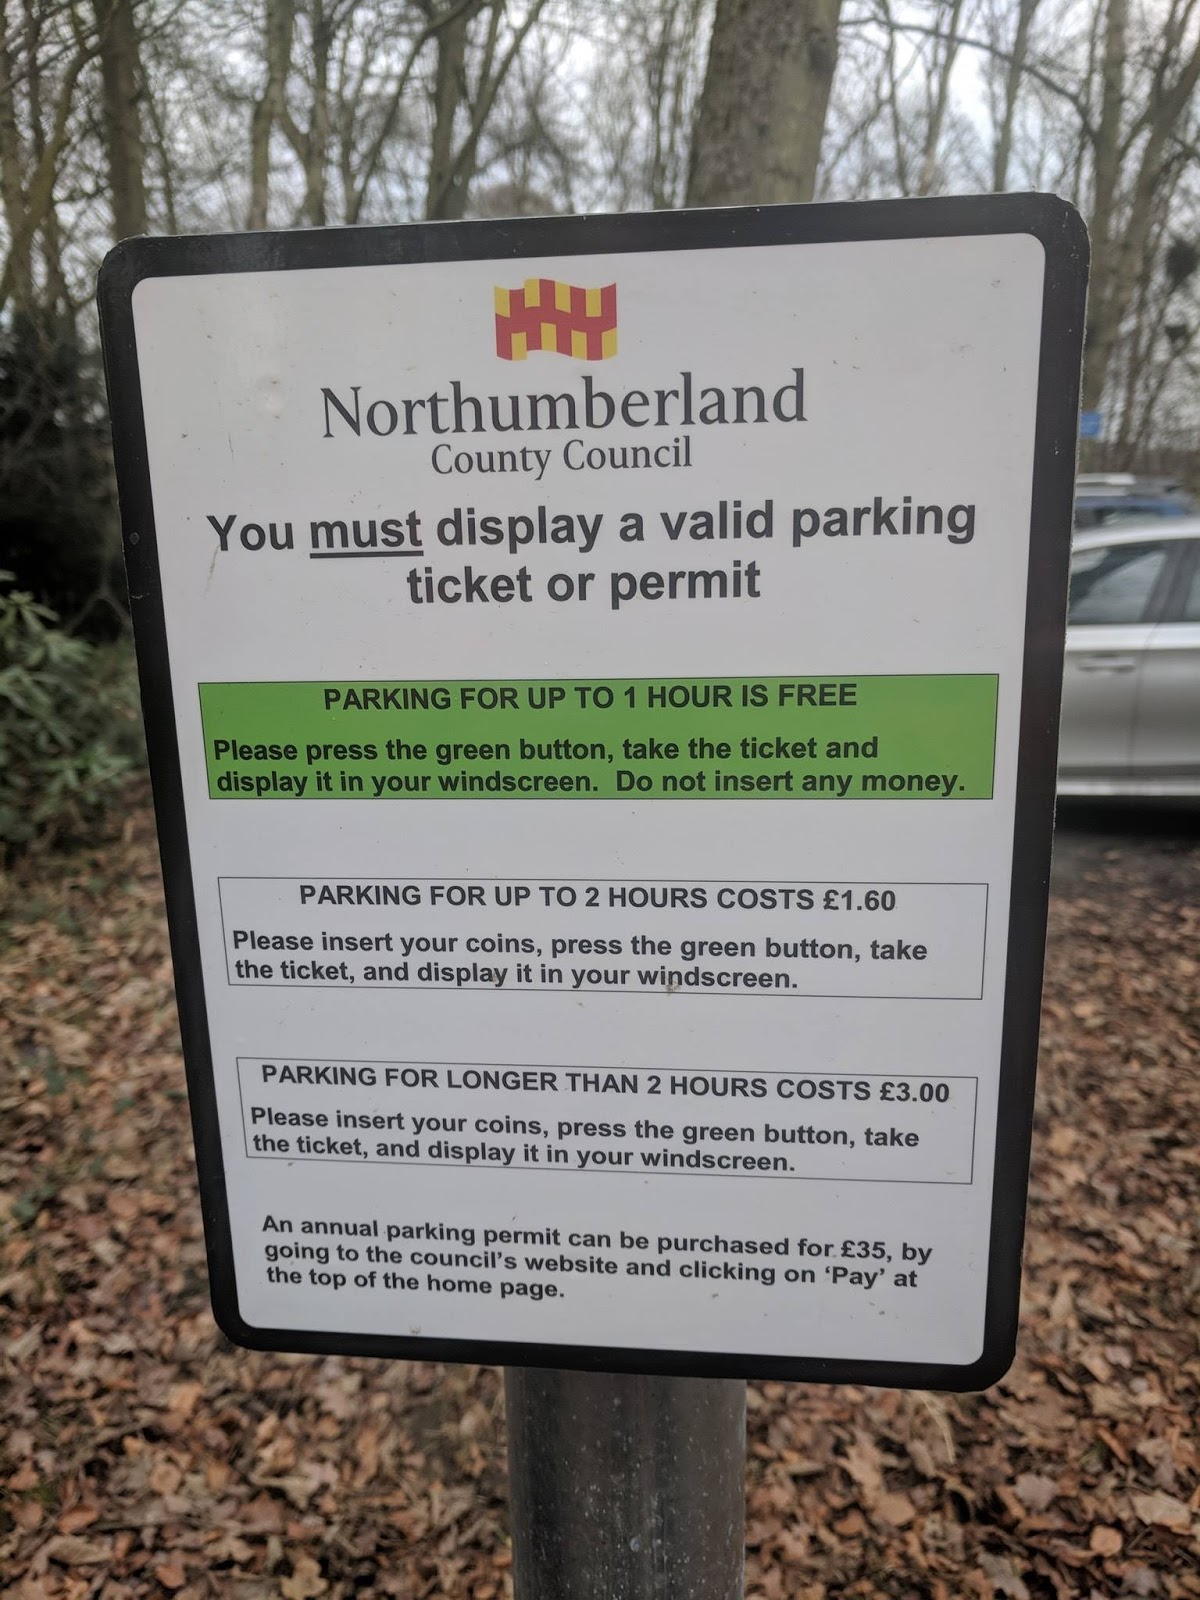 A Guide to Visiting Bolam Lake, Northumberland  - car parking charges